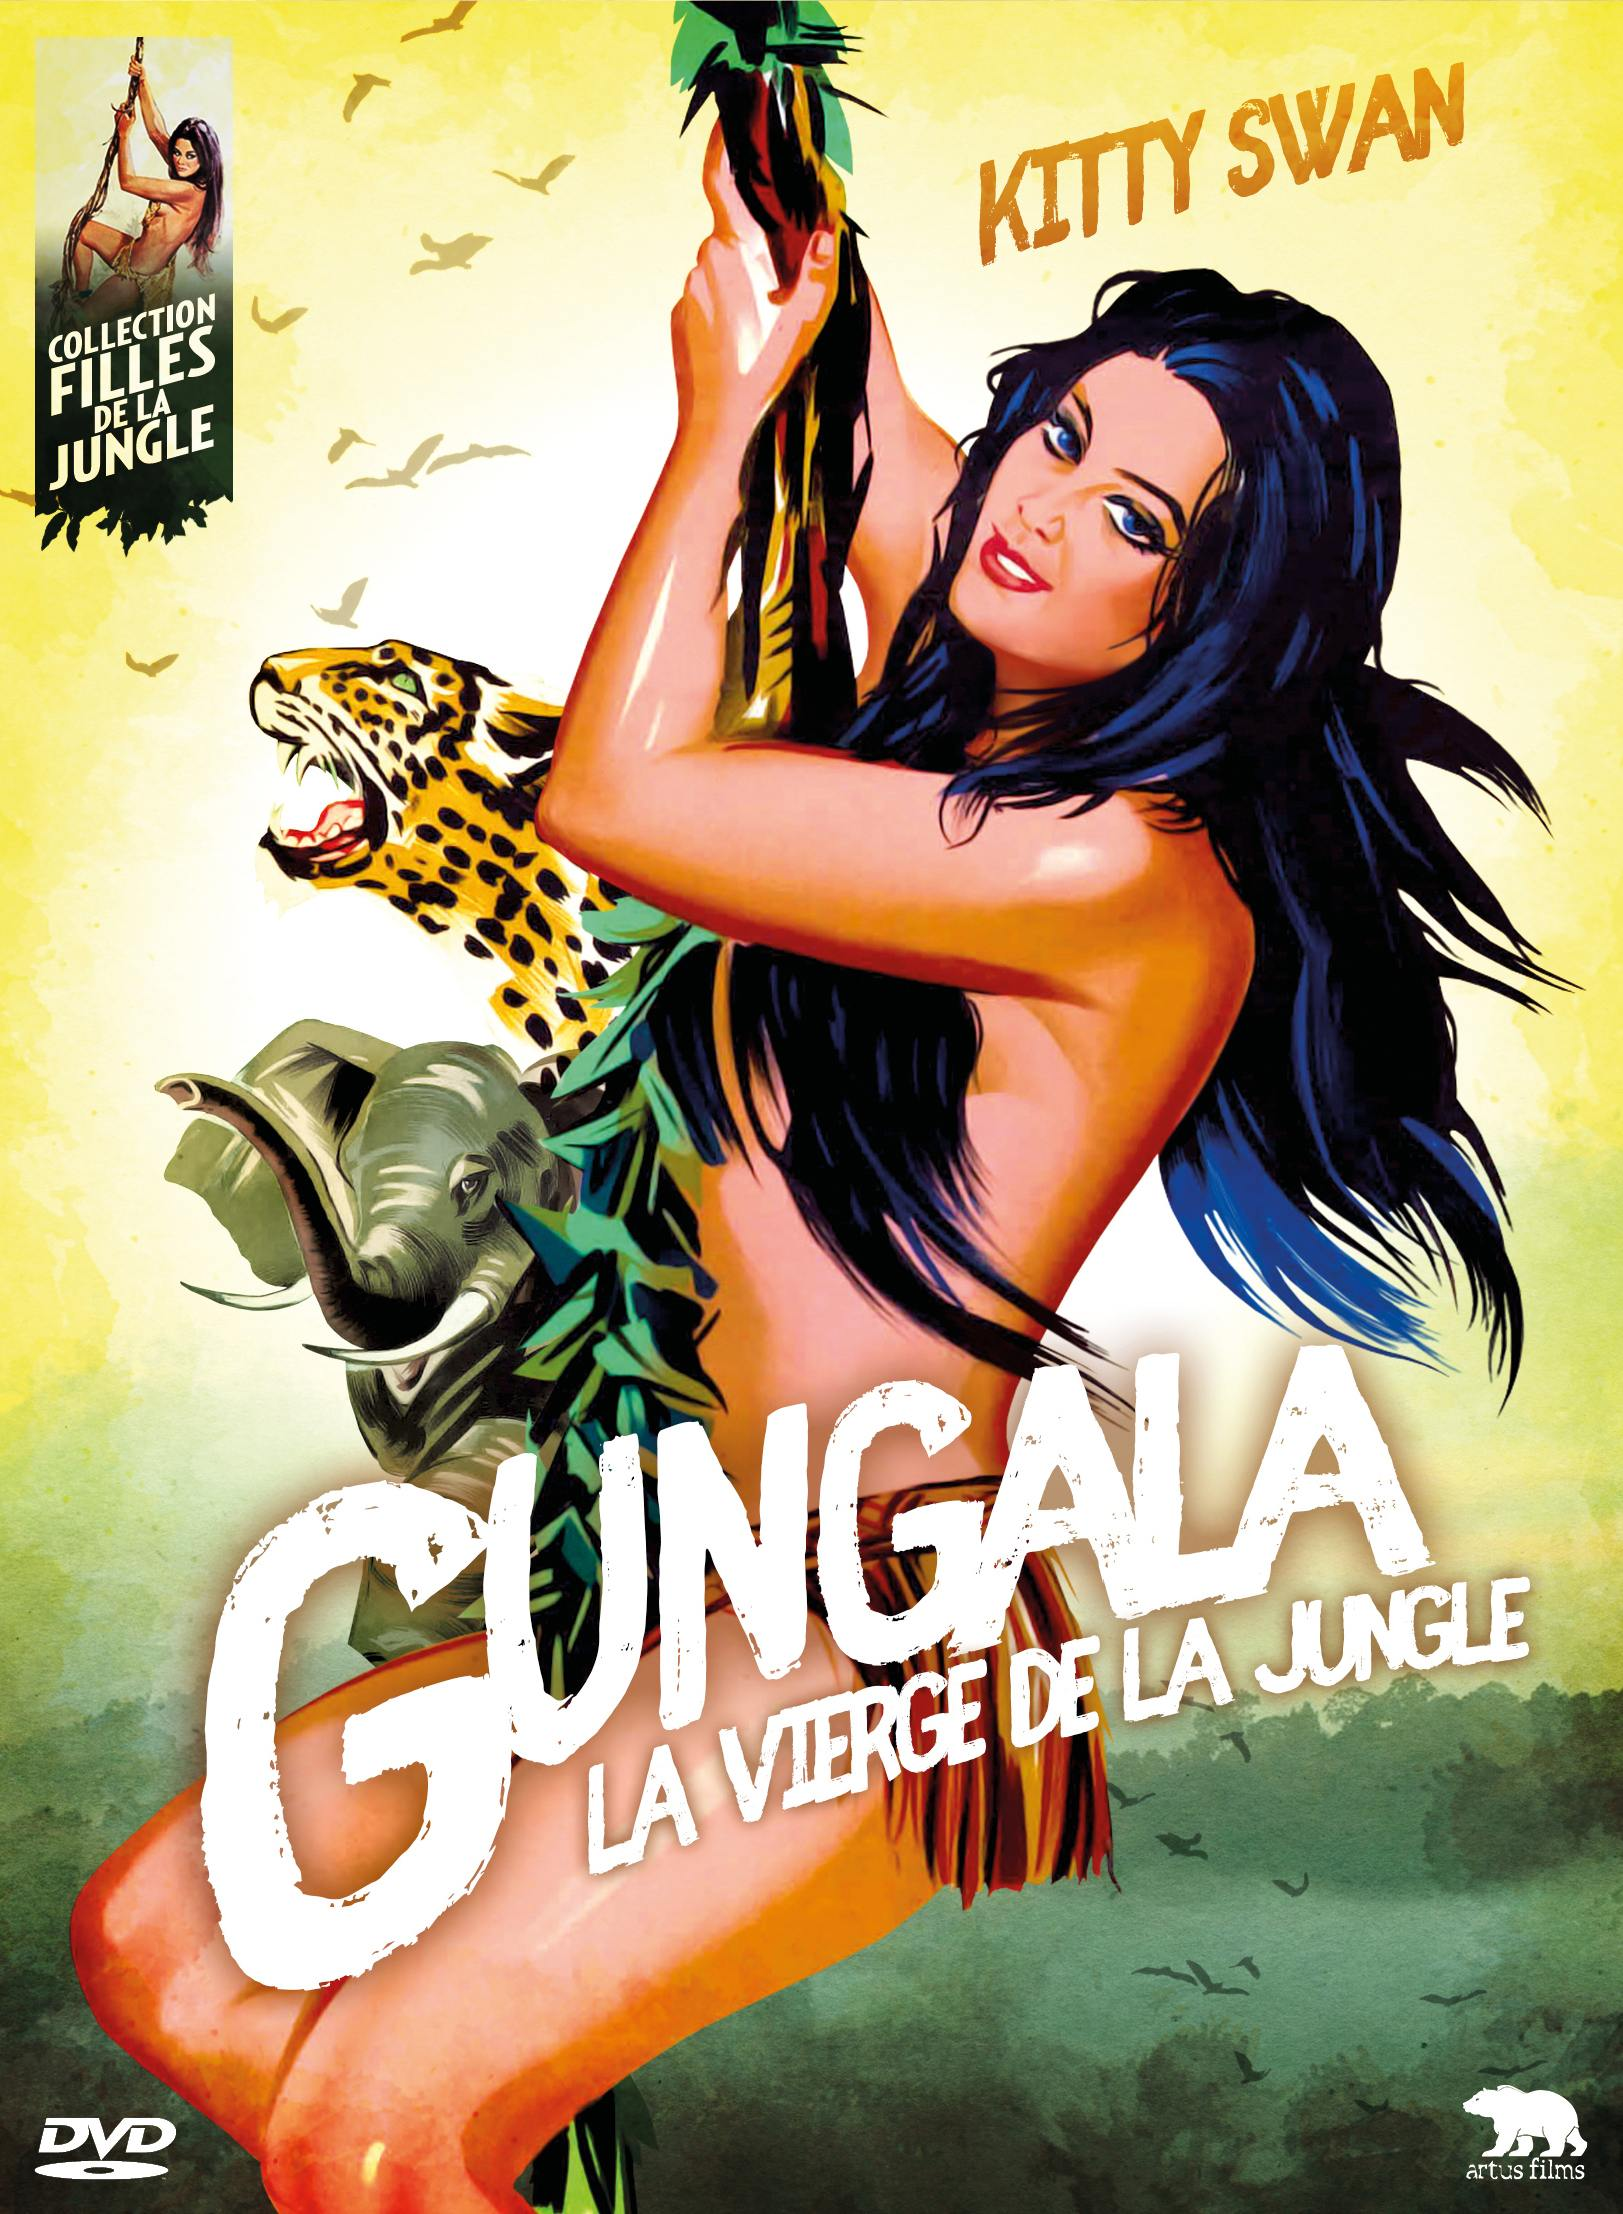 Gungala, la vierge de la jungle - dvd